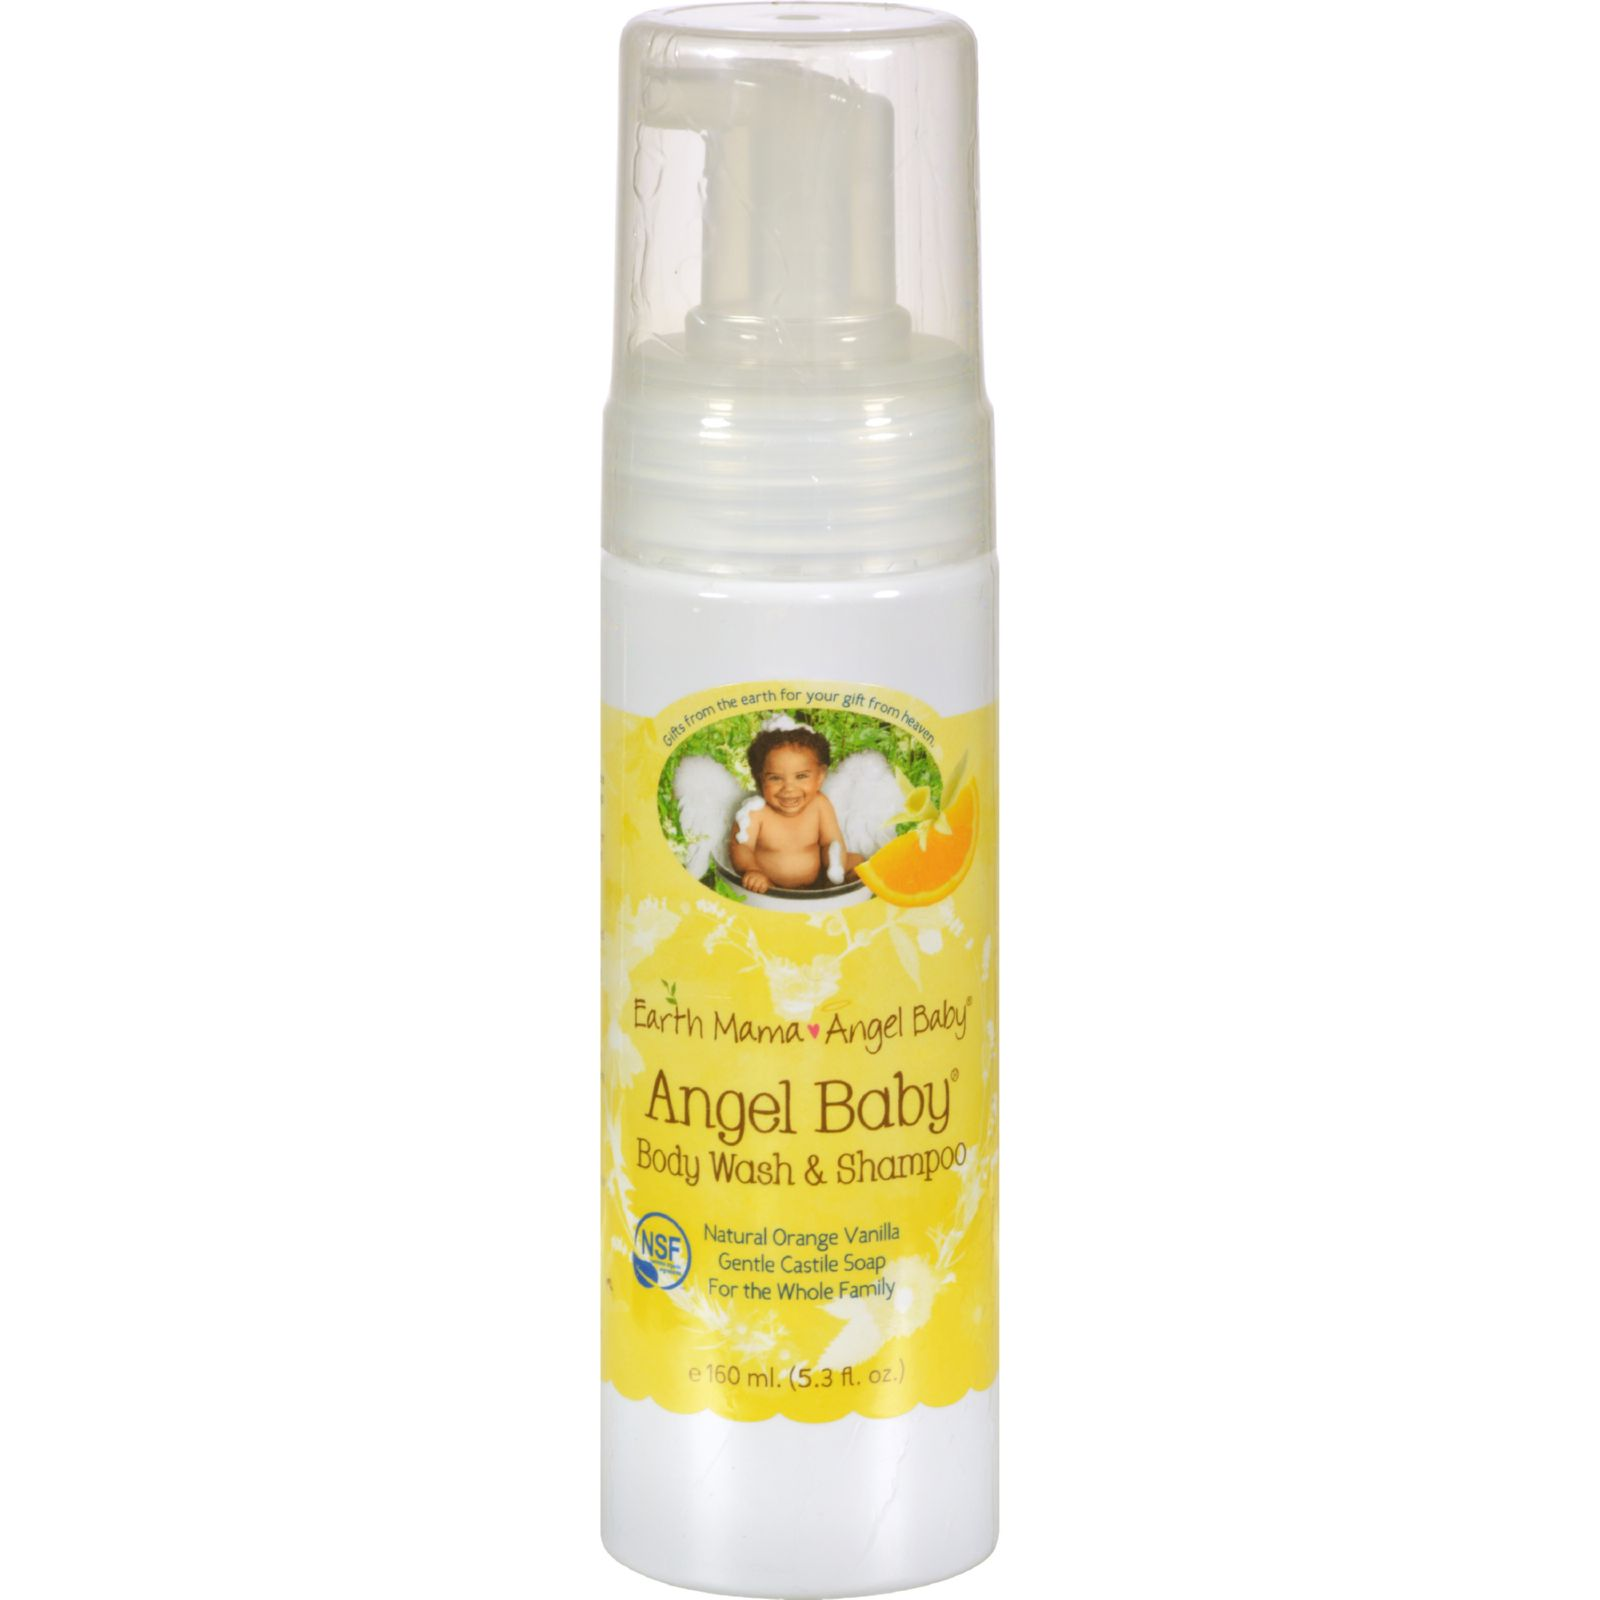 Earth Mama Angel Baby Shampoo and Body Wash - 5.3 fl oz